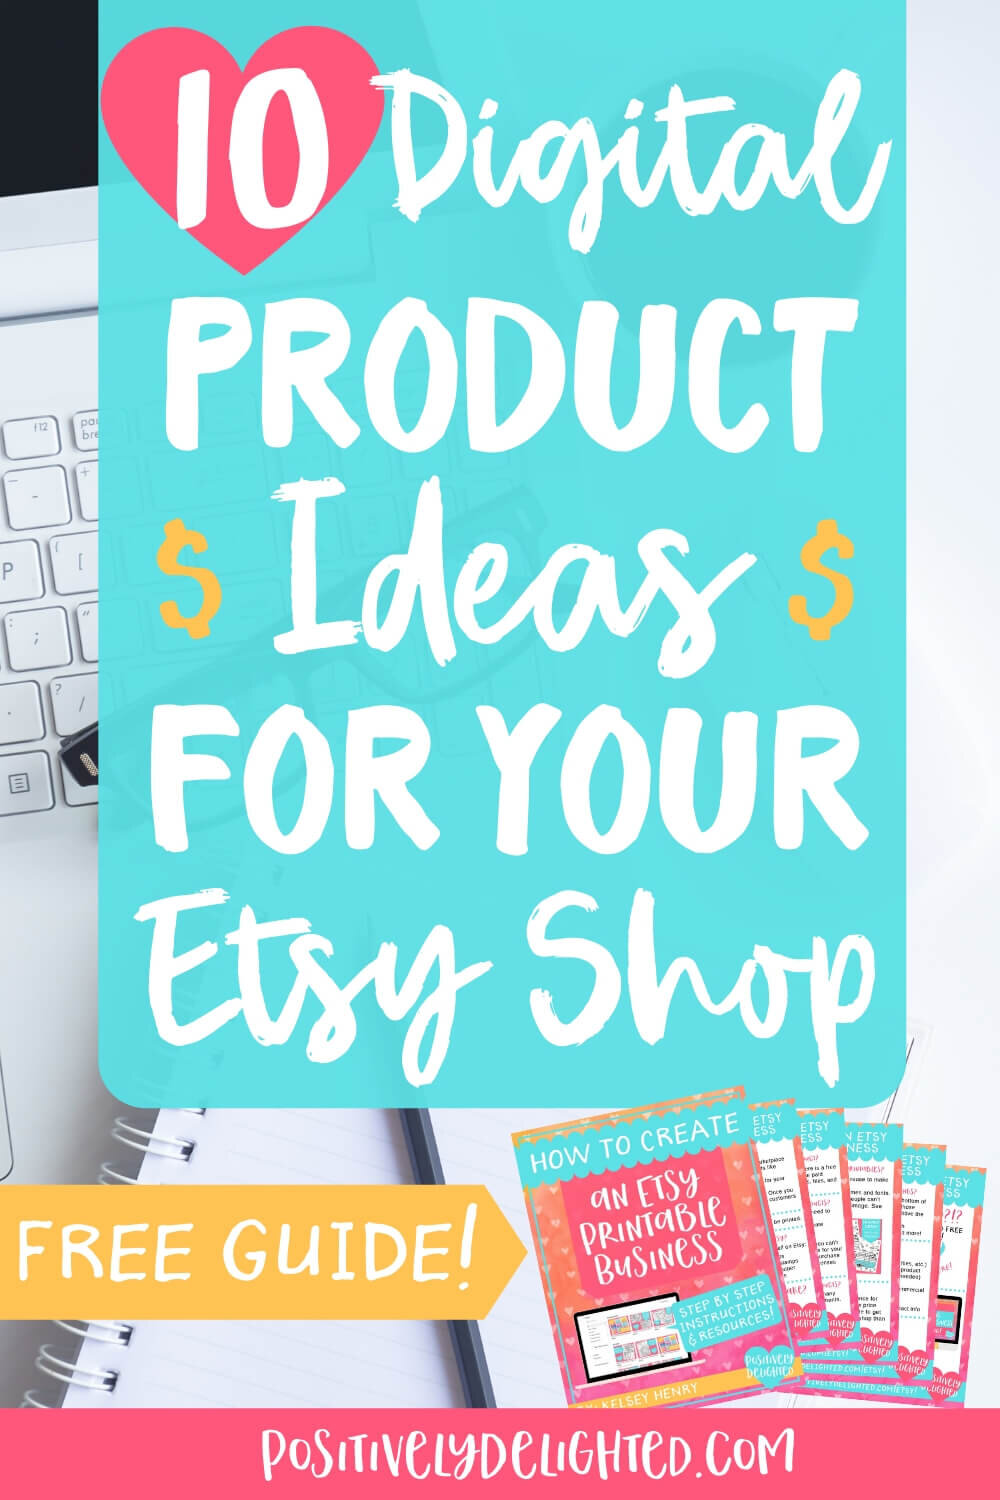 20 Digital Products Ideas for Your Etsy Shop — Positively Delighted